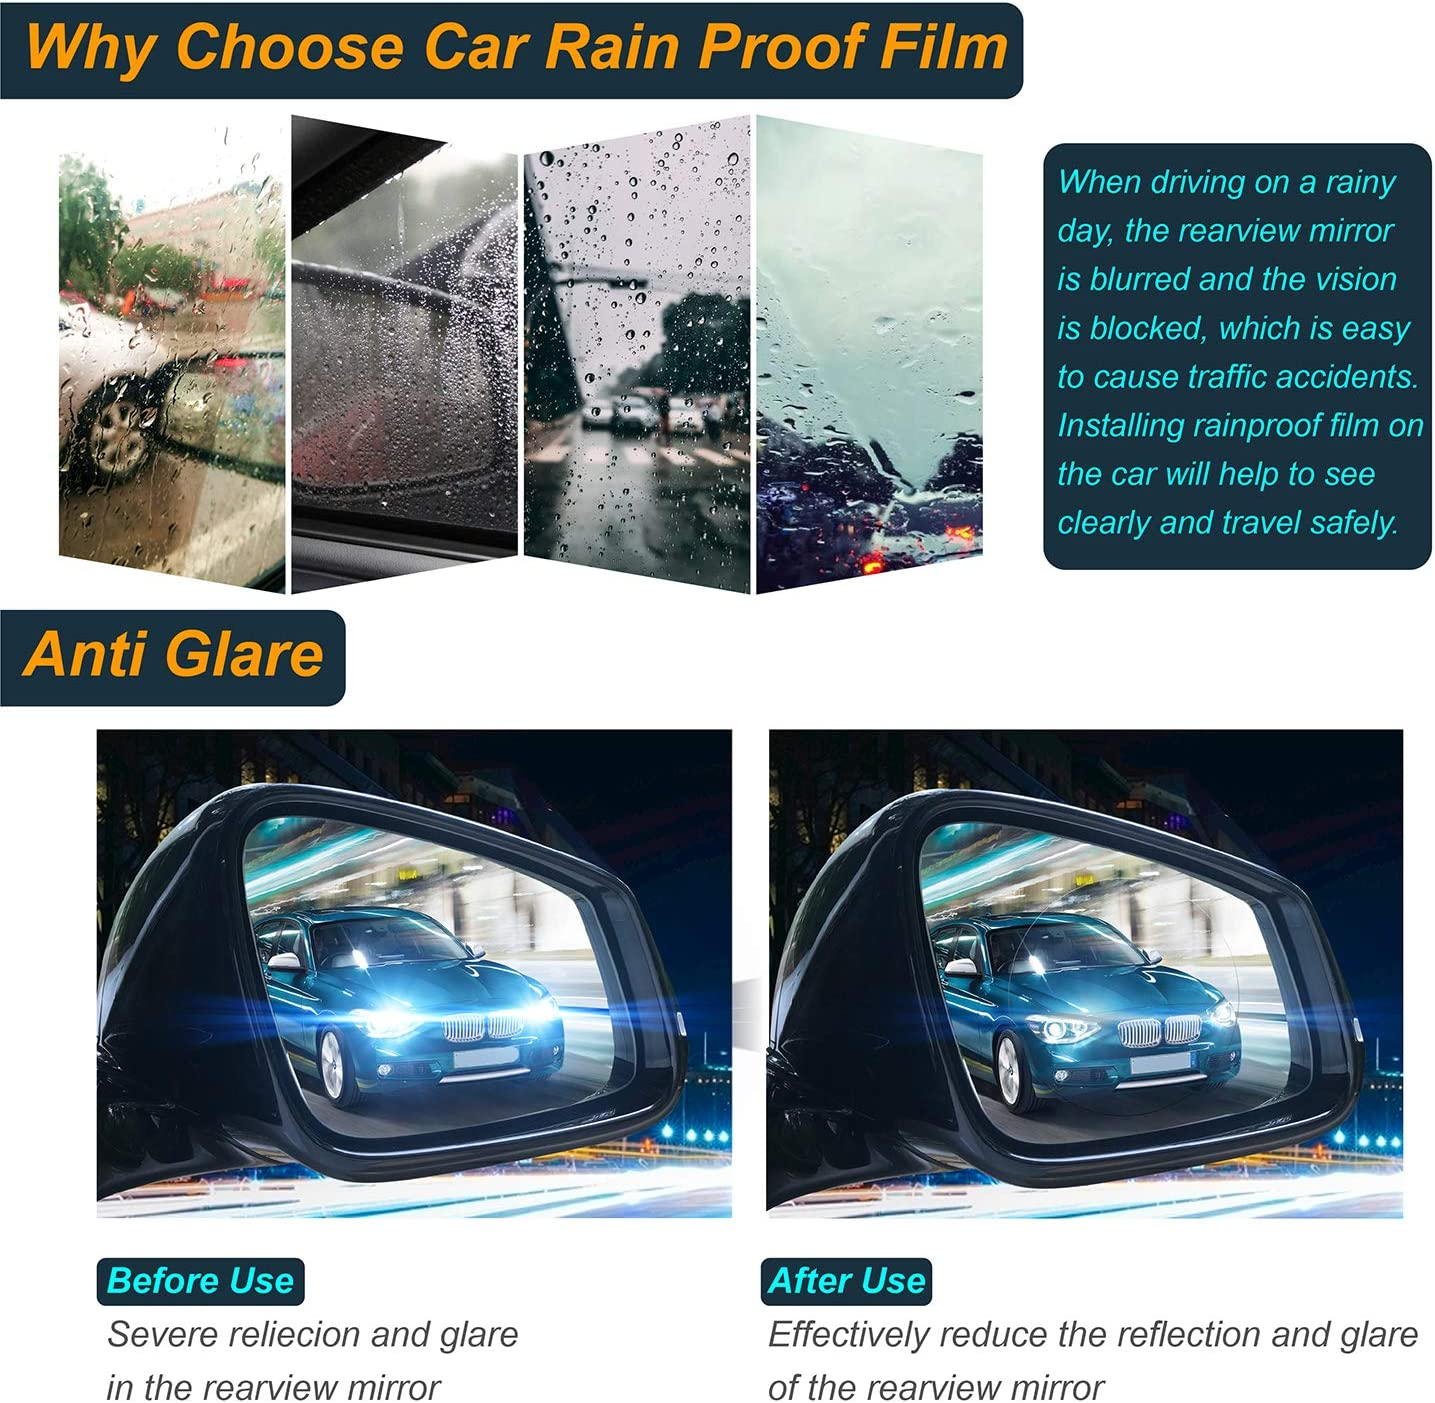 5PCS Car Rearview Mirror Film,Car Side View Mirror film Anti glare film for interior rearview mirror,Nano Rainproof Film Anti Fog Glare Mirror Window Film,Clear Protective Film for Car Mirrors